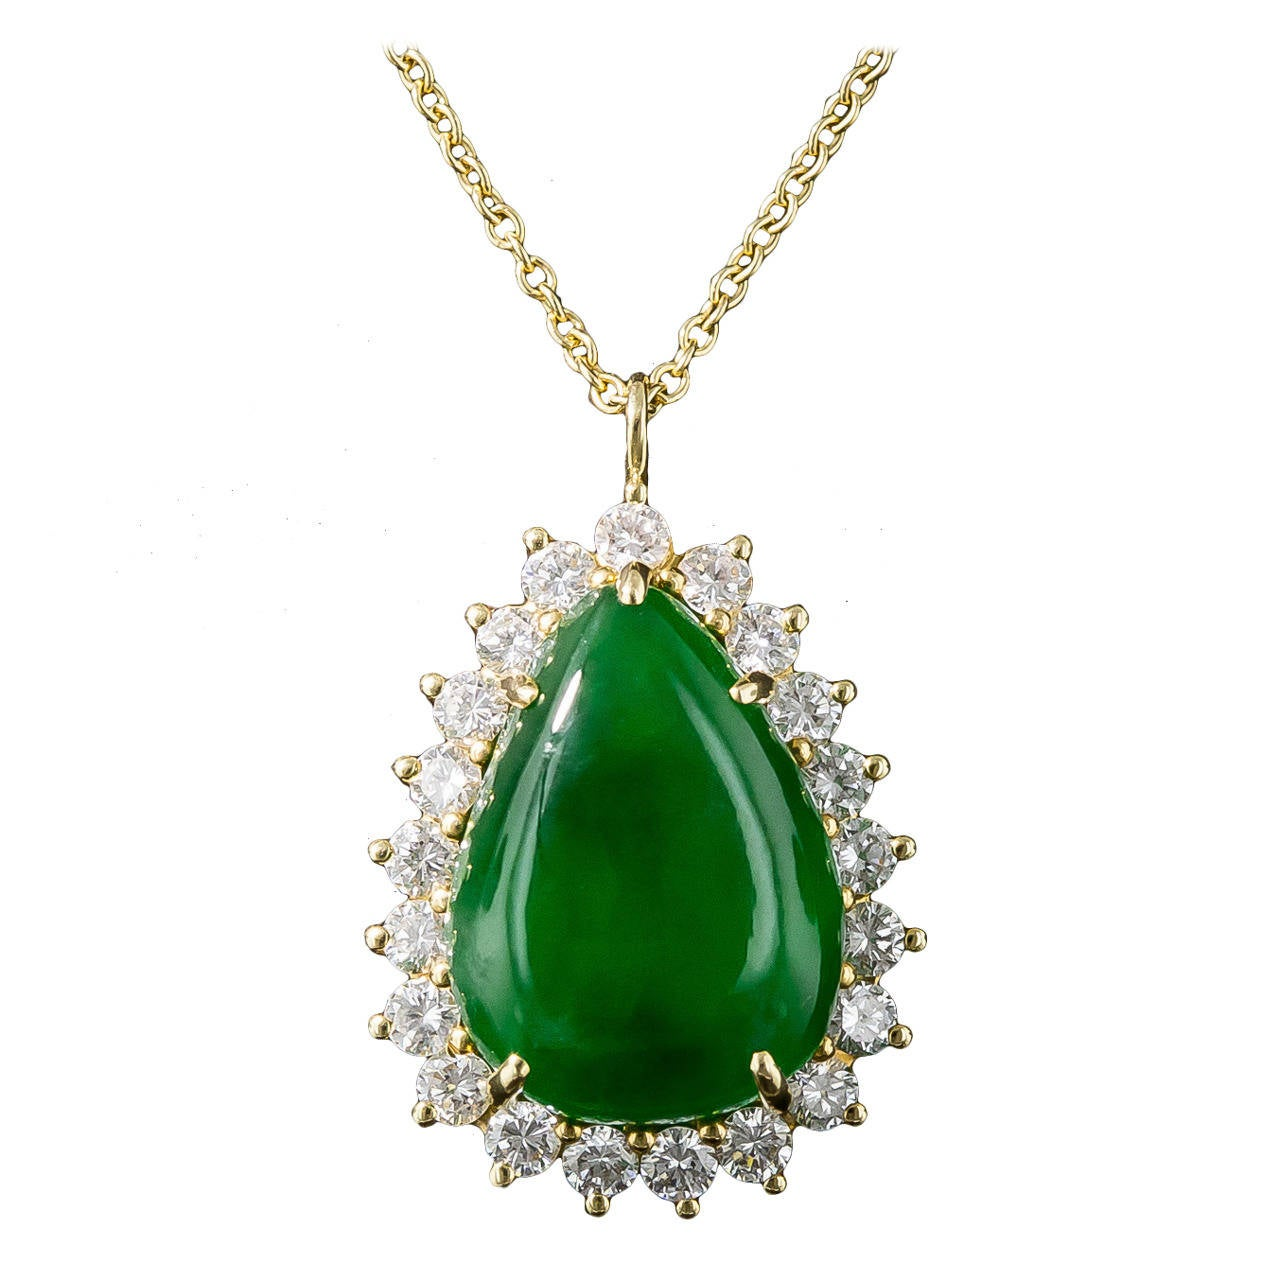 Tiffany And Co Jadeite Diamond Pendant At 1stdibs